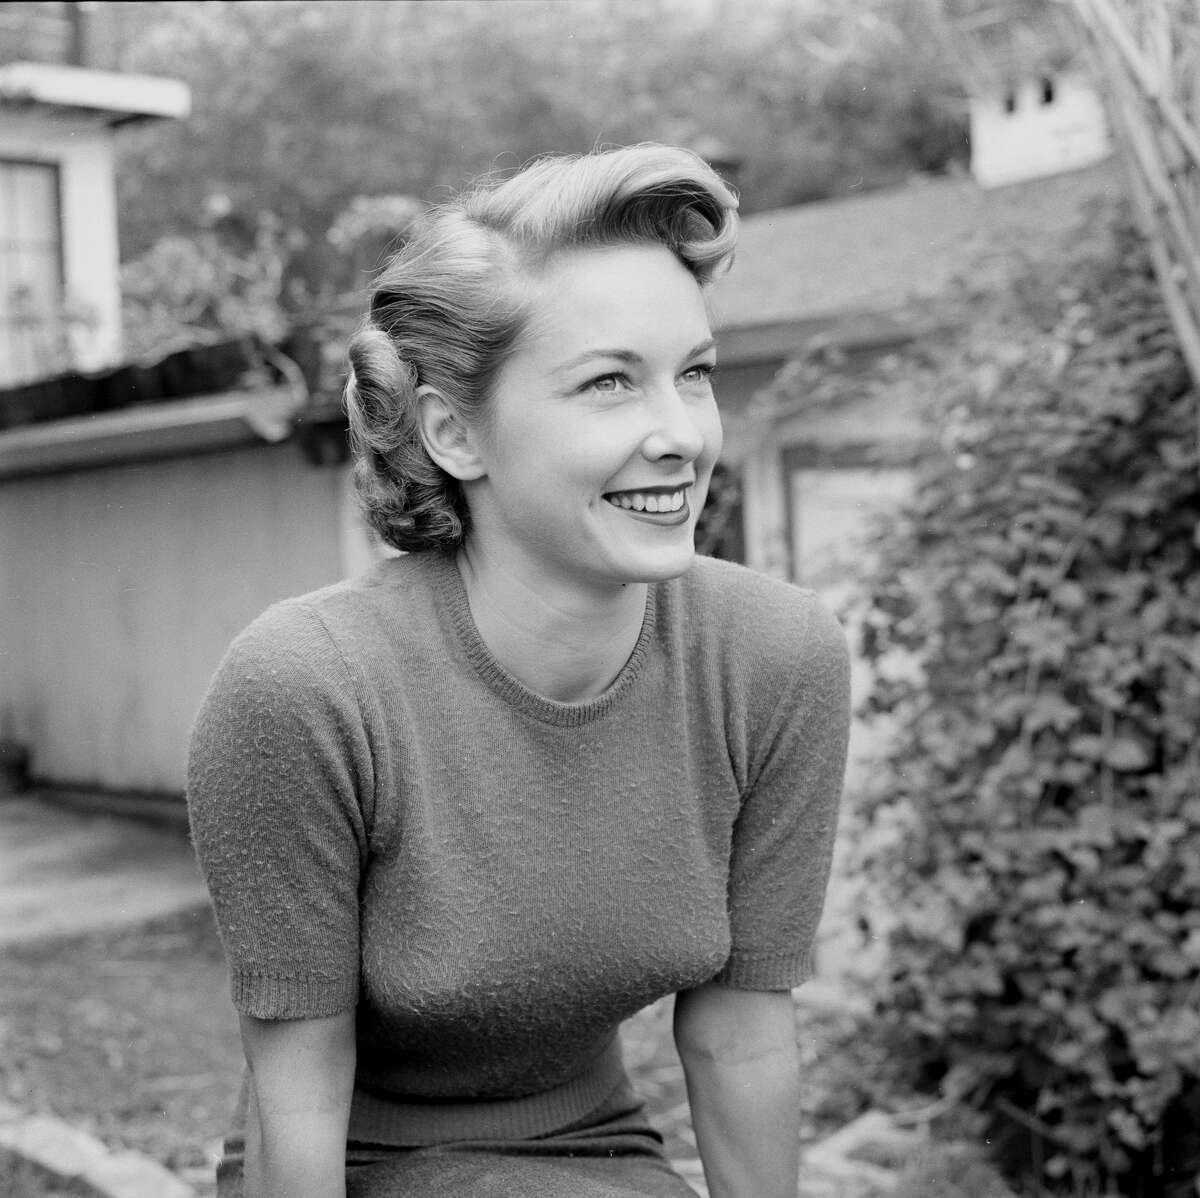 Actress Vera Miles, who served as the inspiration for the Carlotta portrait.